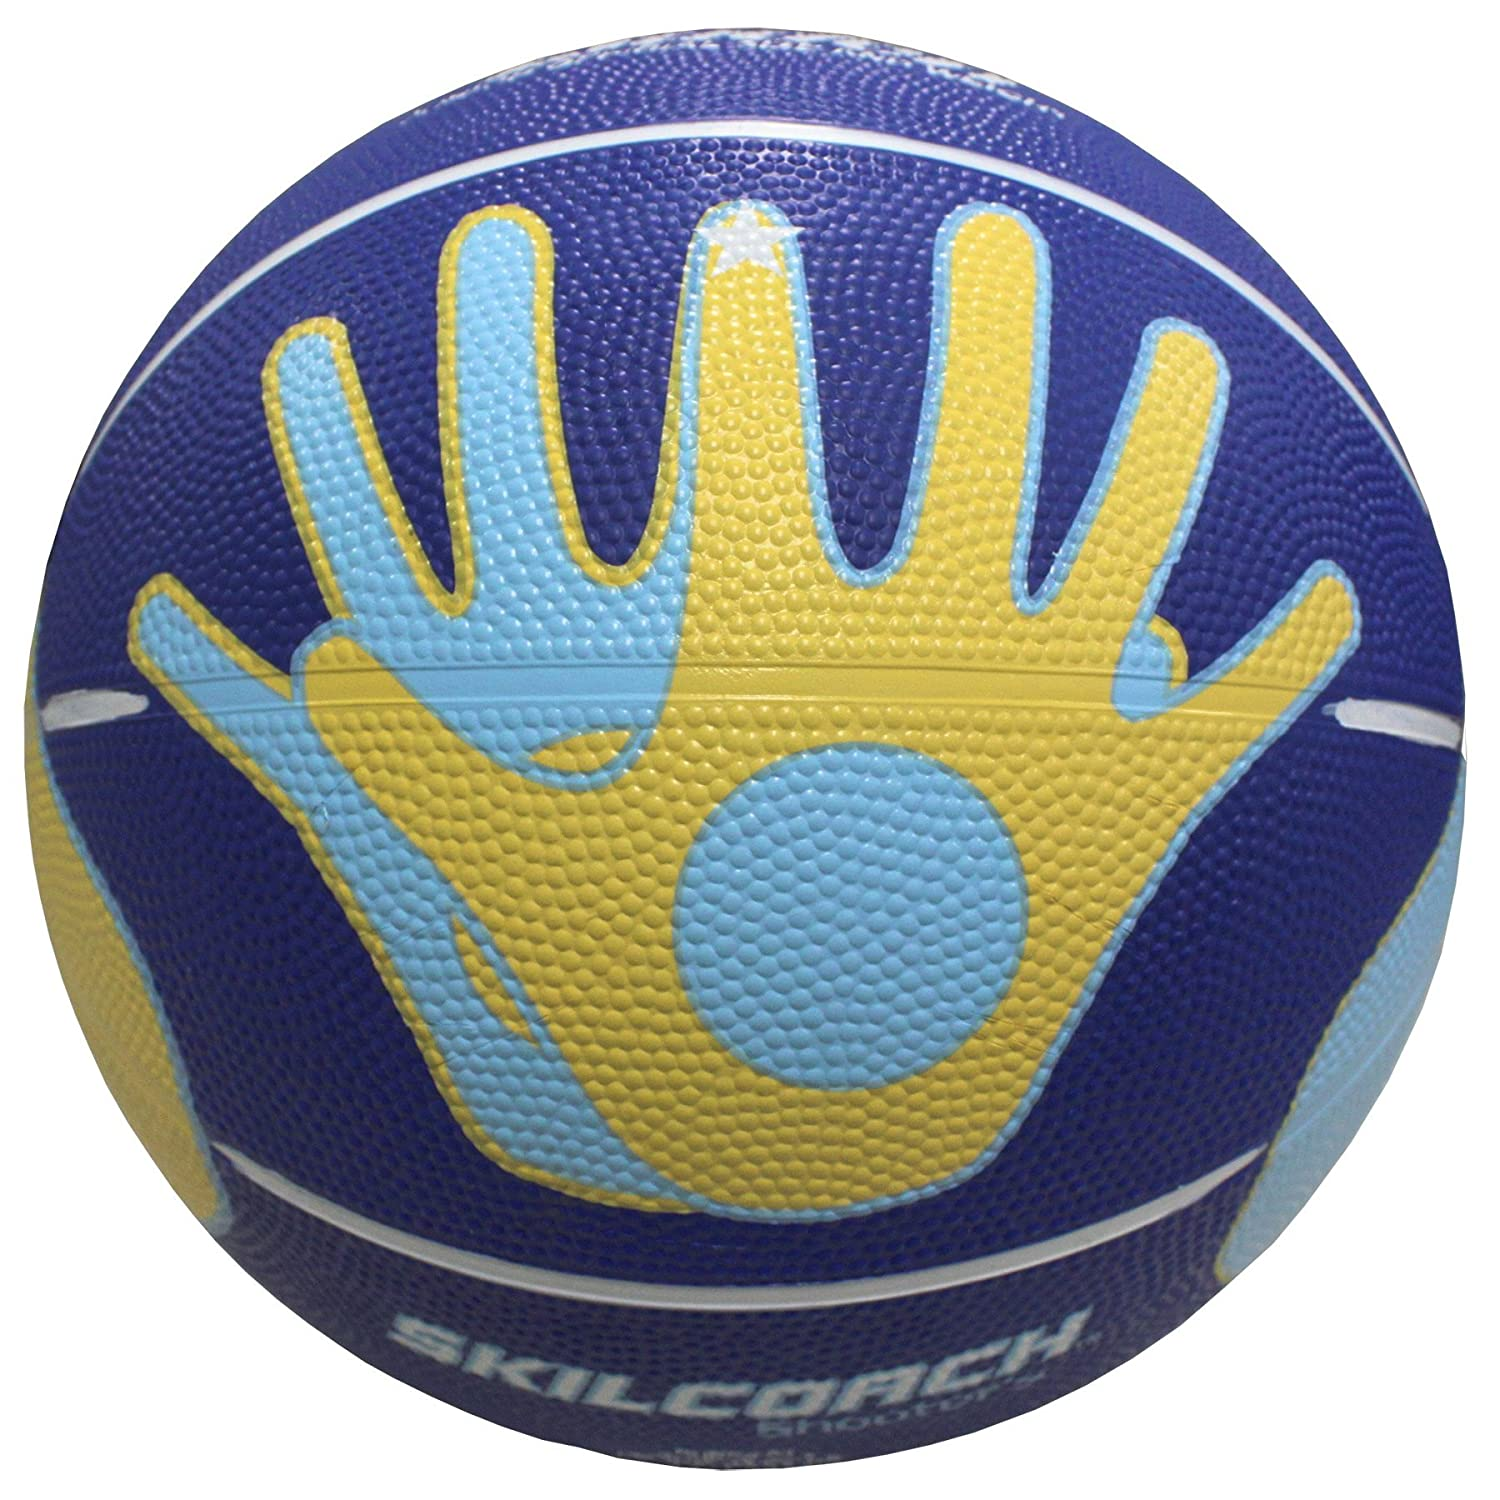 Baden SkilCoach Shooter's Rubber Basketball Baden Sports